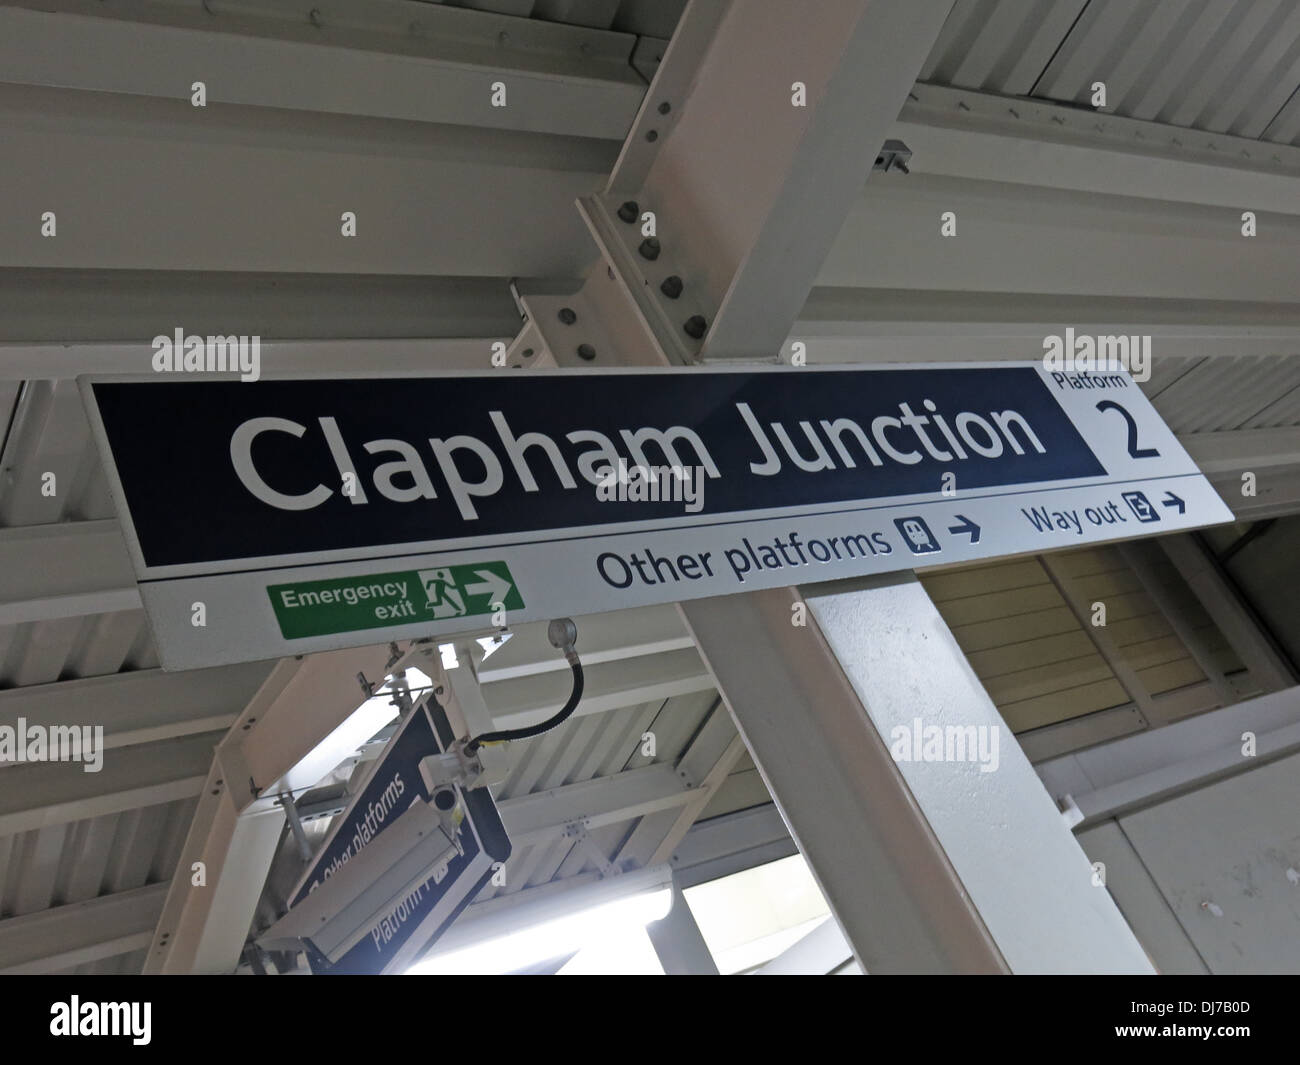 Clapham Junction railway station south west London city England , UK - Stock Image